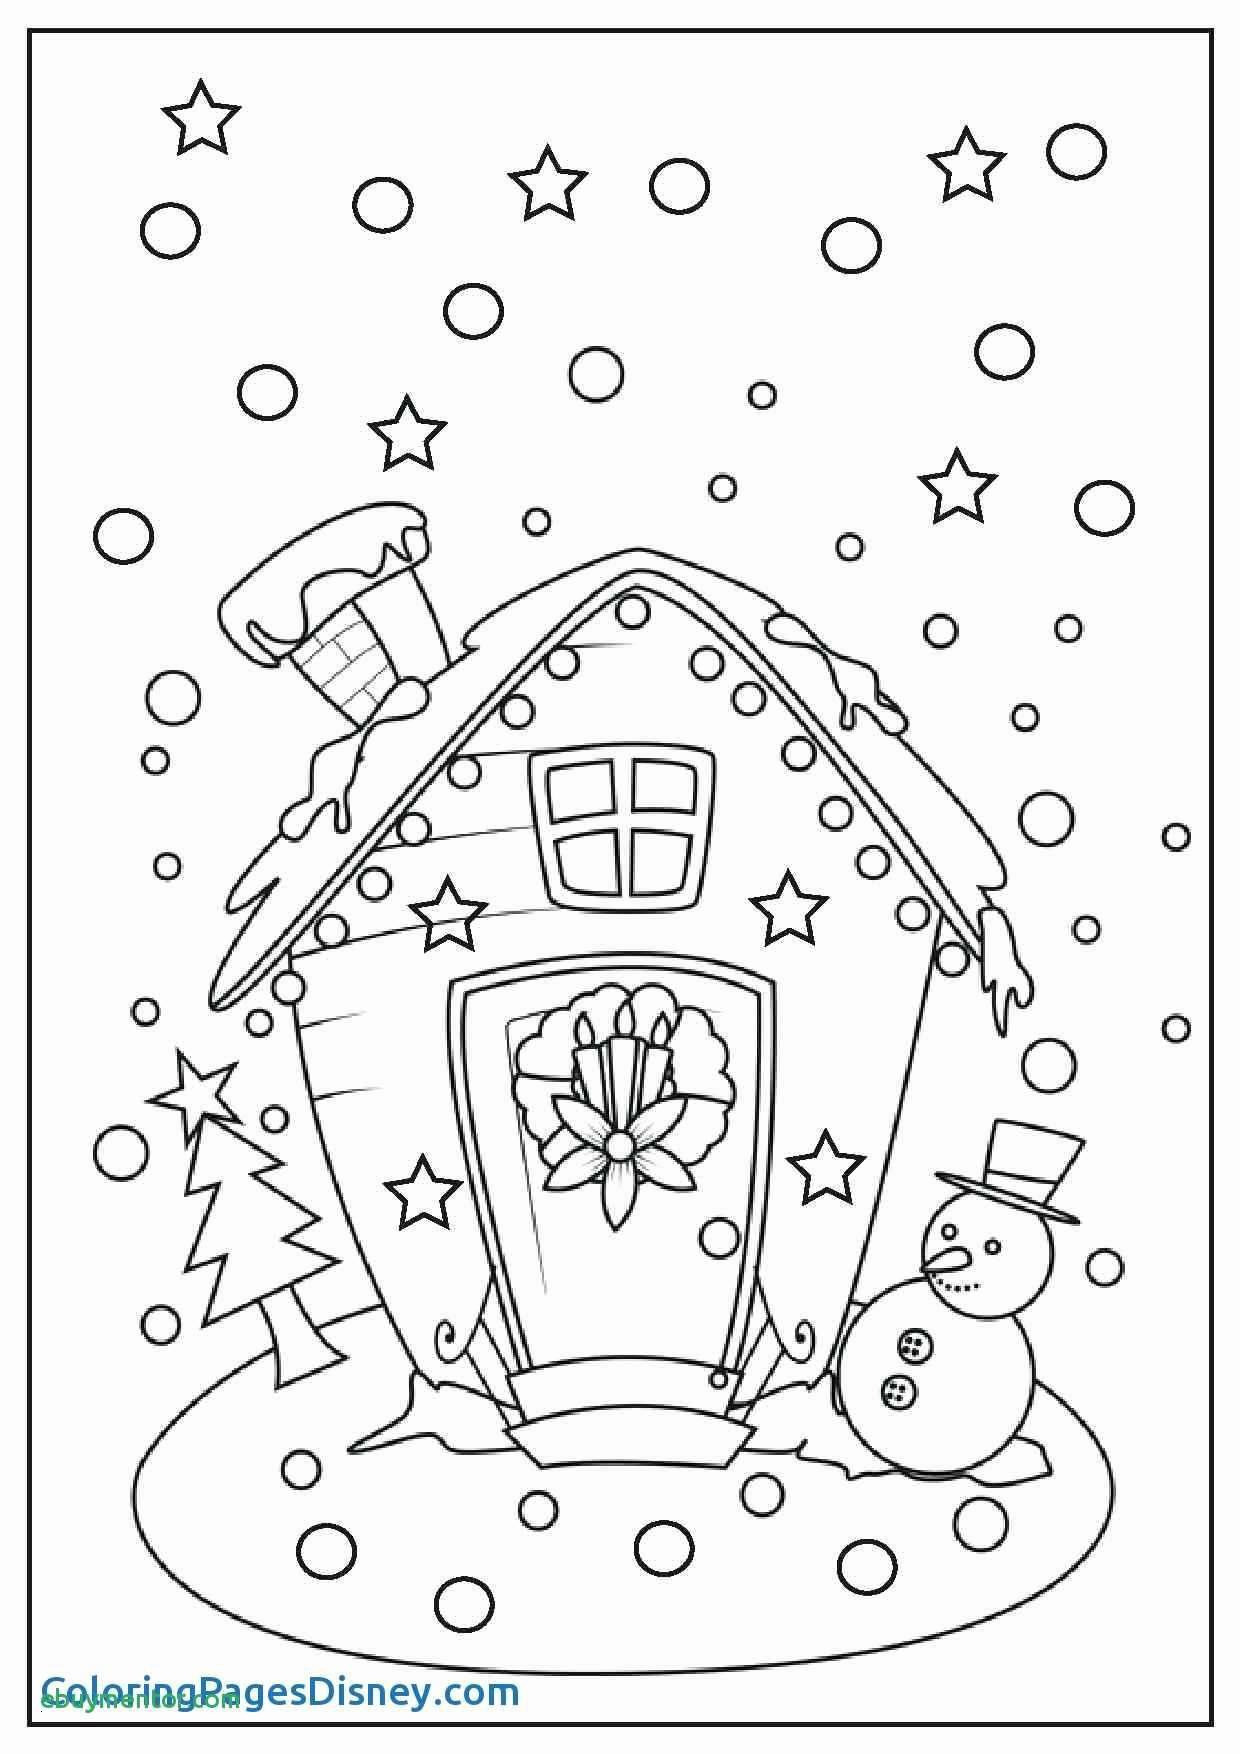 Ausmalbilder Winnie Pooh Genial Winnie the Pooh Winter Coloring Pages Coloring Pages Coloring Pages Galerie